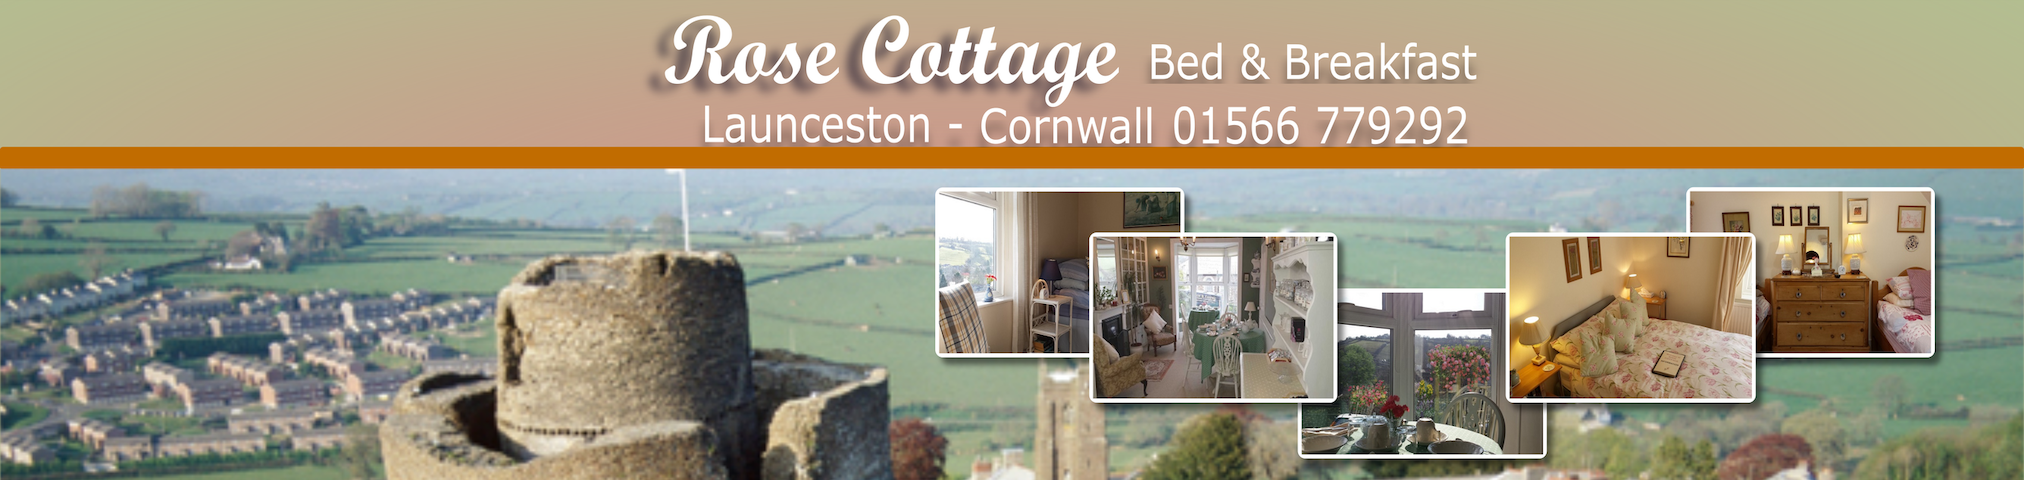 Rose Cottage B & B, launceston - Single Room